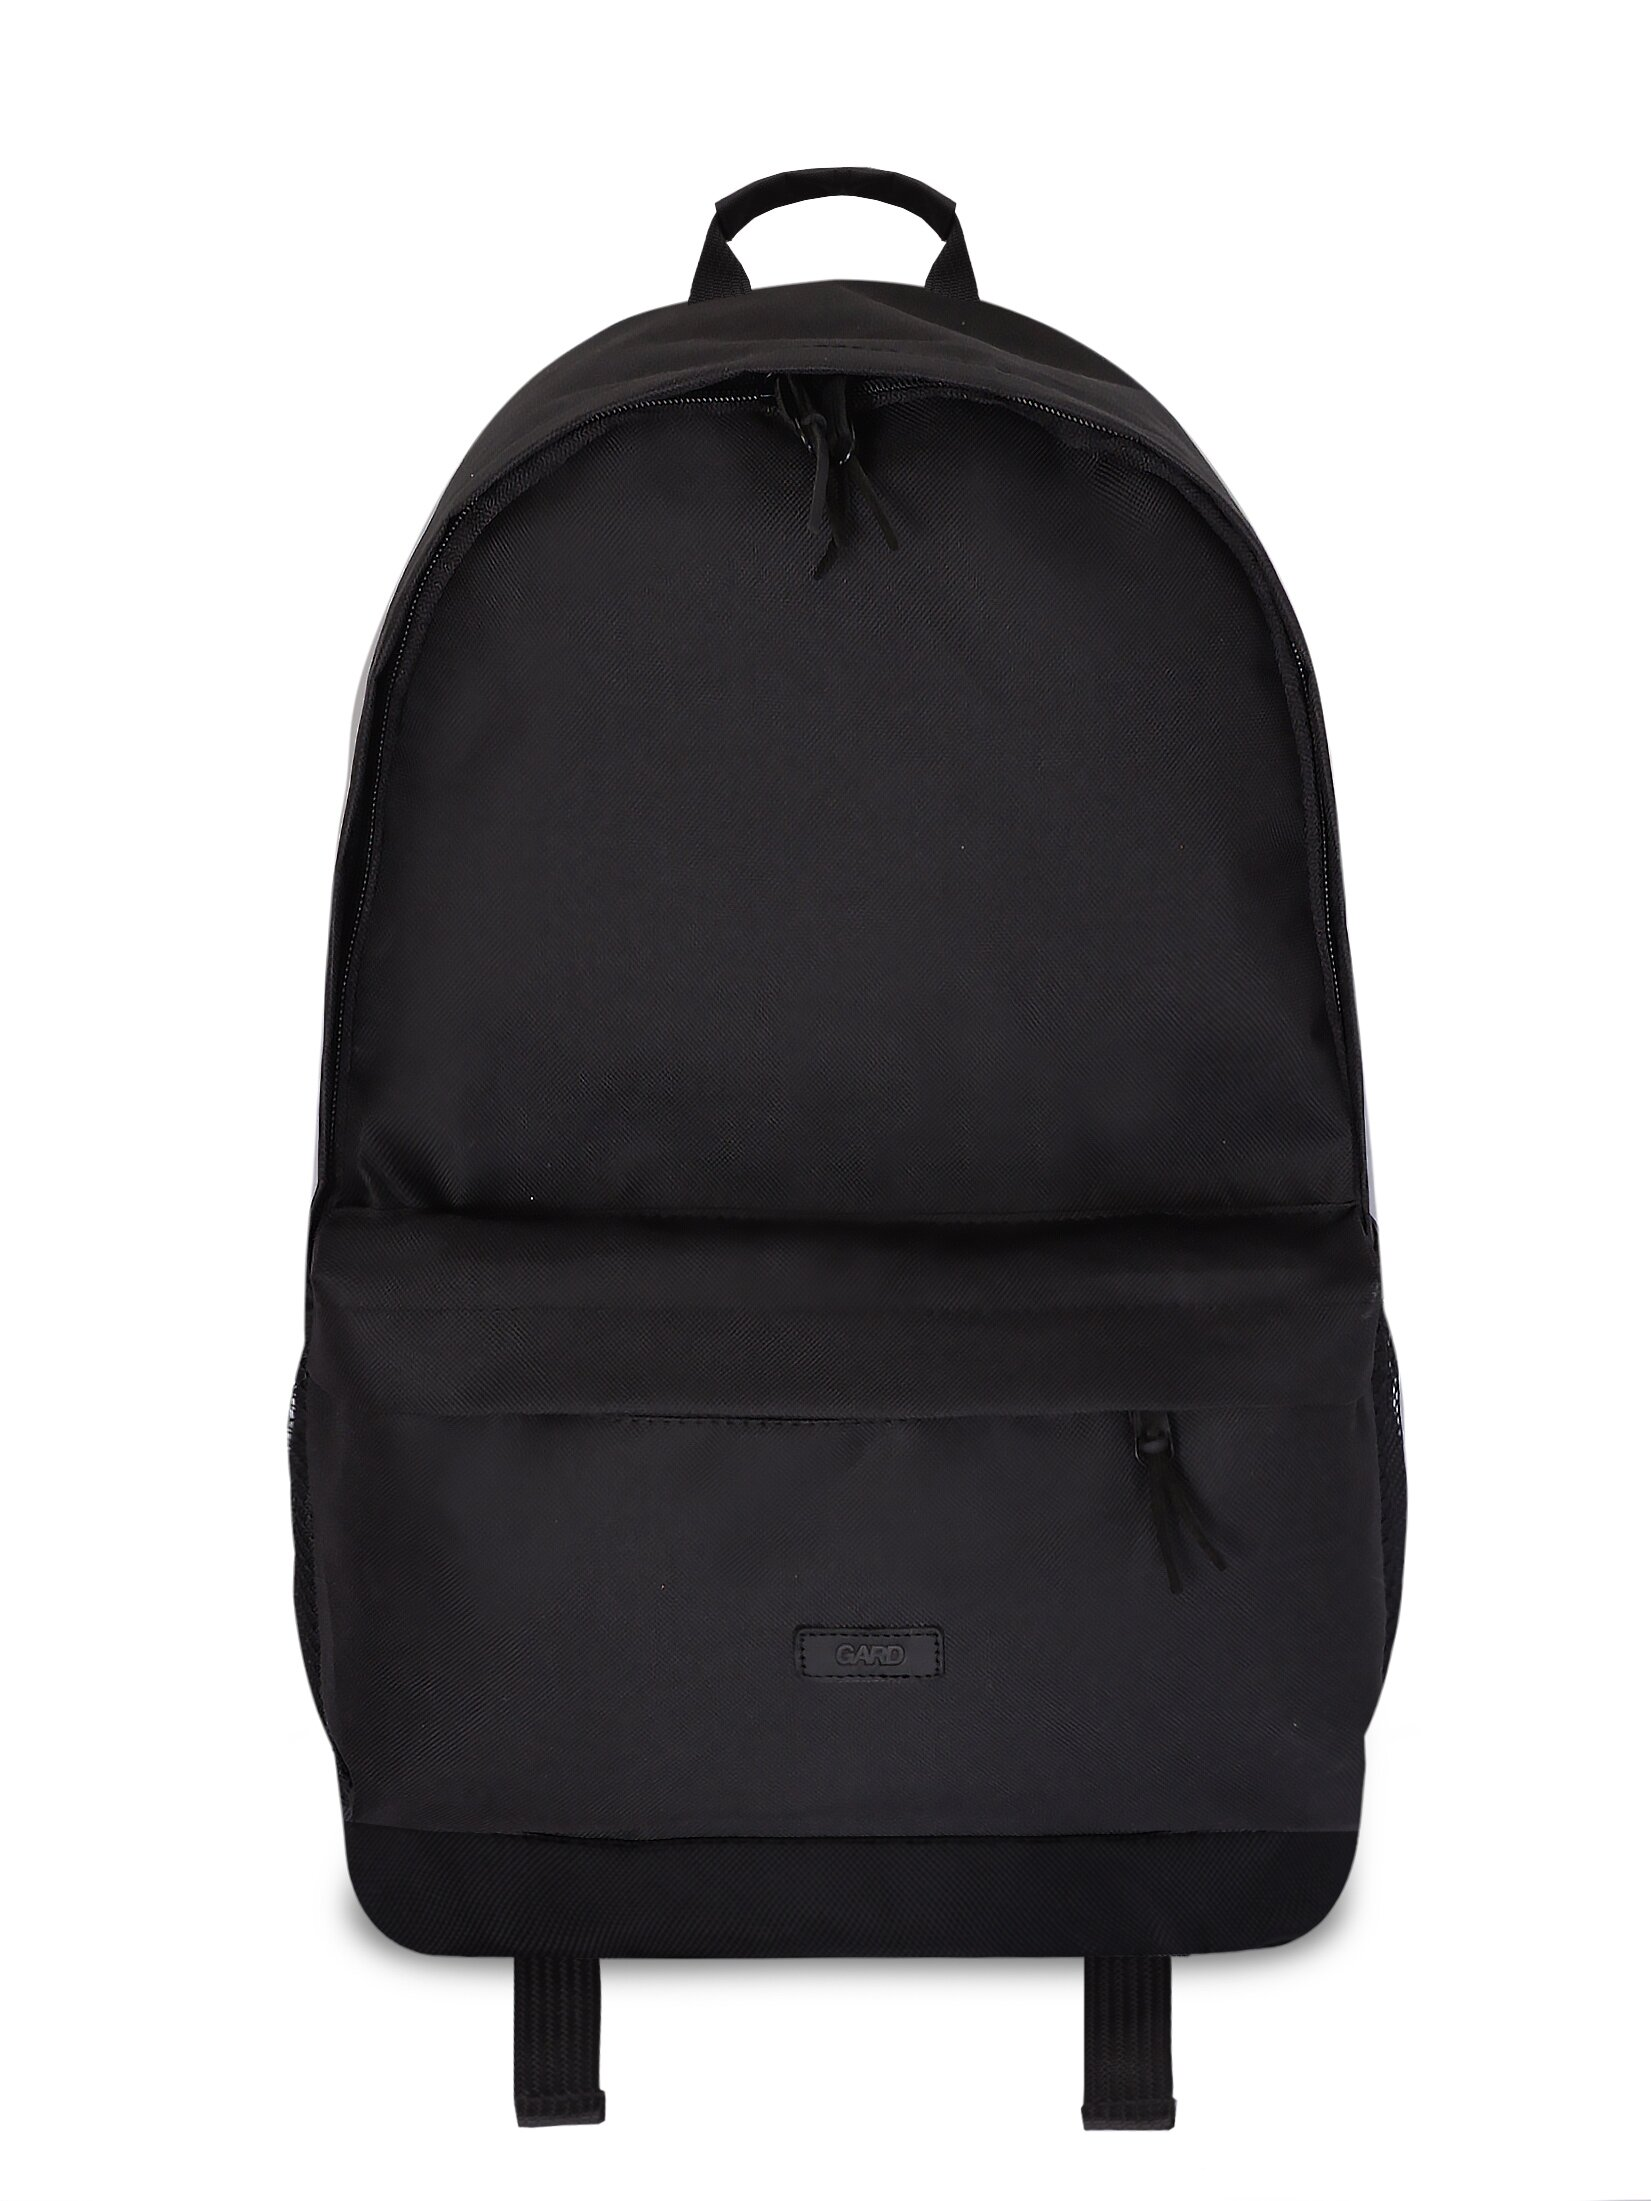 Рюкзак GARD BACKPACK-2 | Black 2/18 Черный (BP2-0002/GRD)